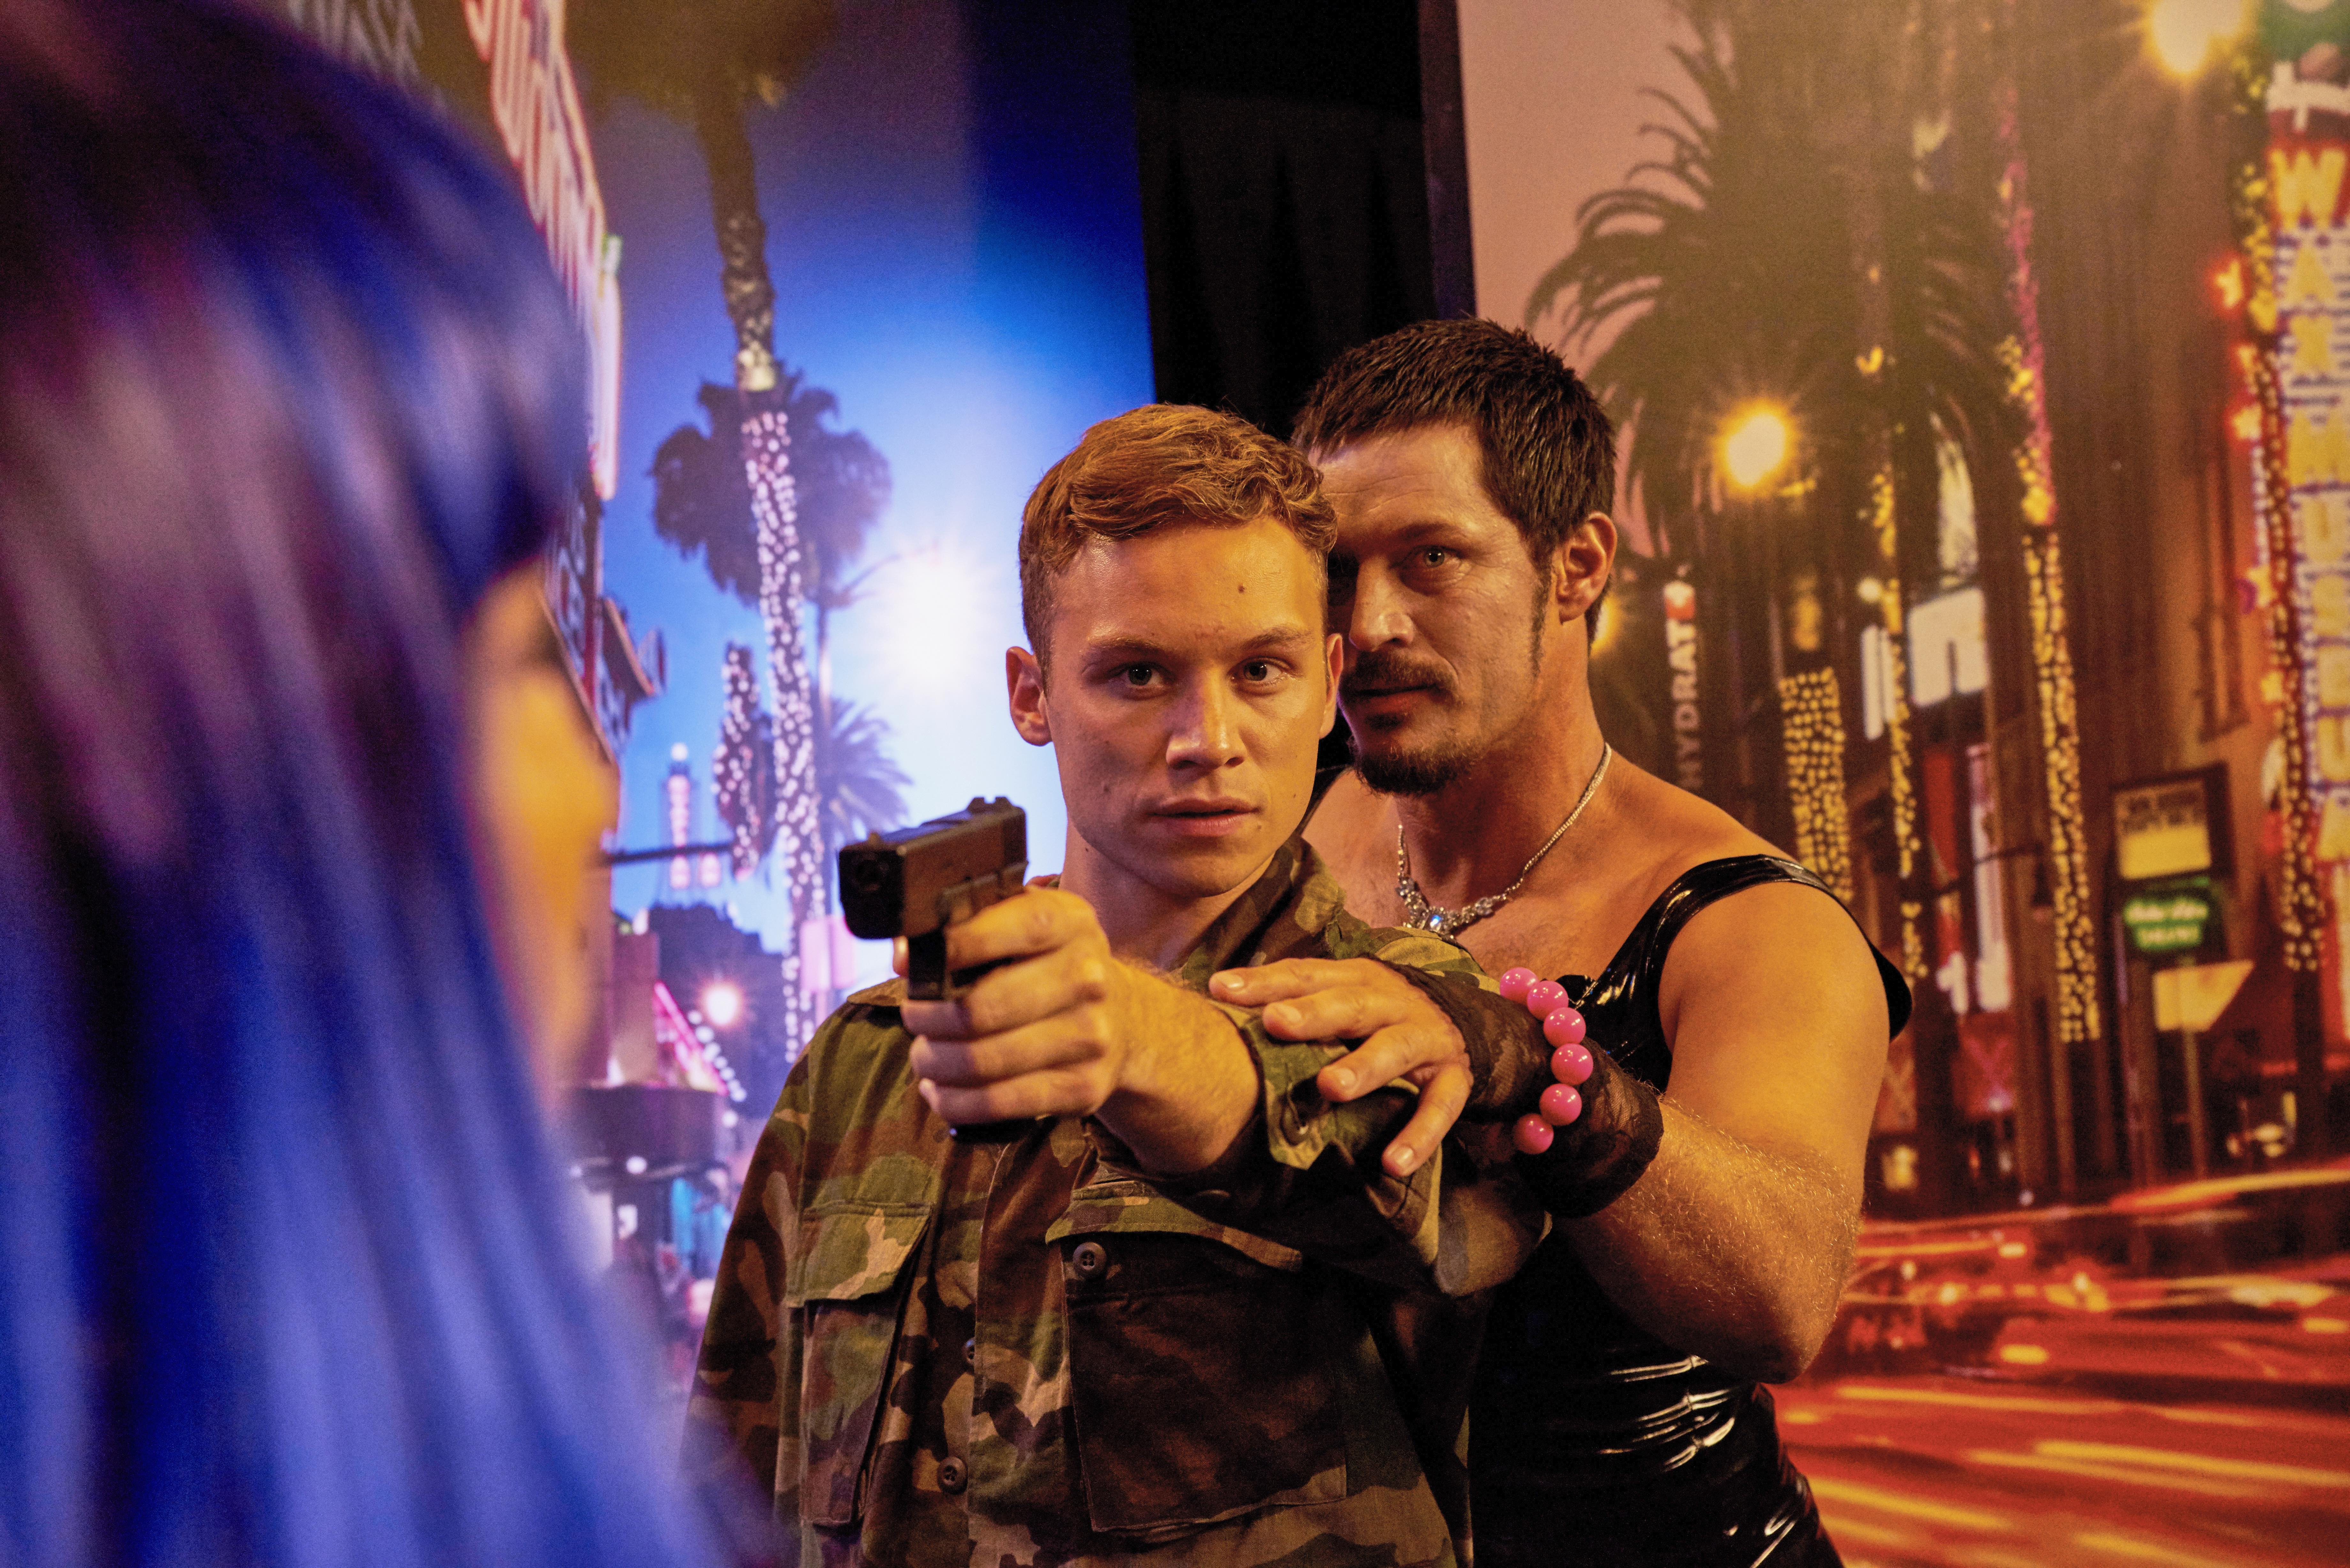 Film Review of Here Are The Young Men - Finn Cole as Joseph Kearney and Travis Fimmel as The TV Host